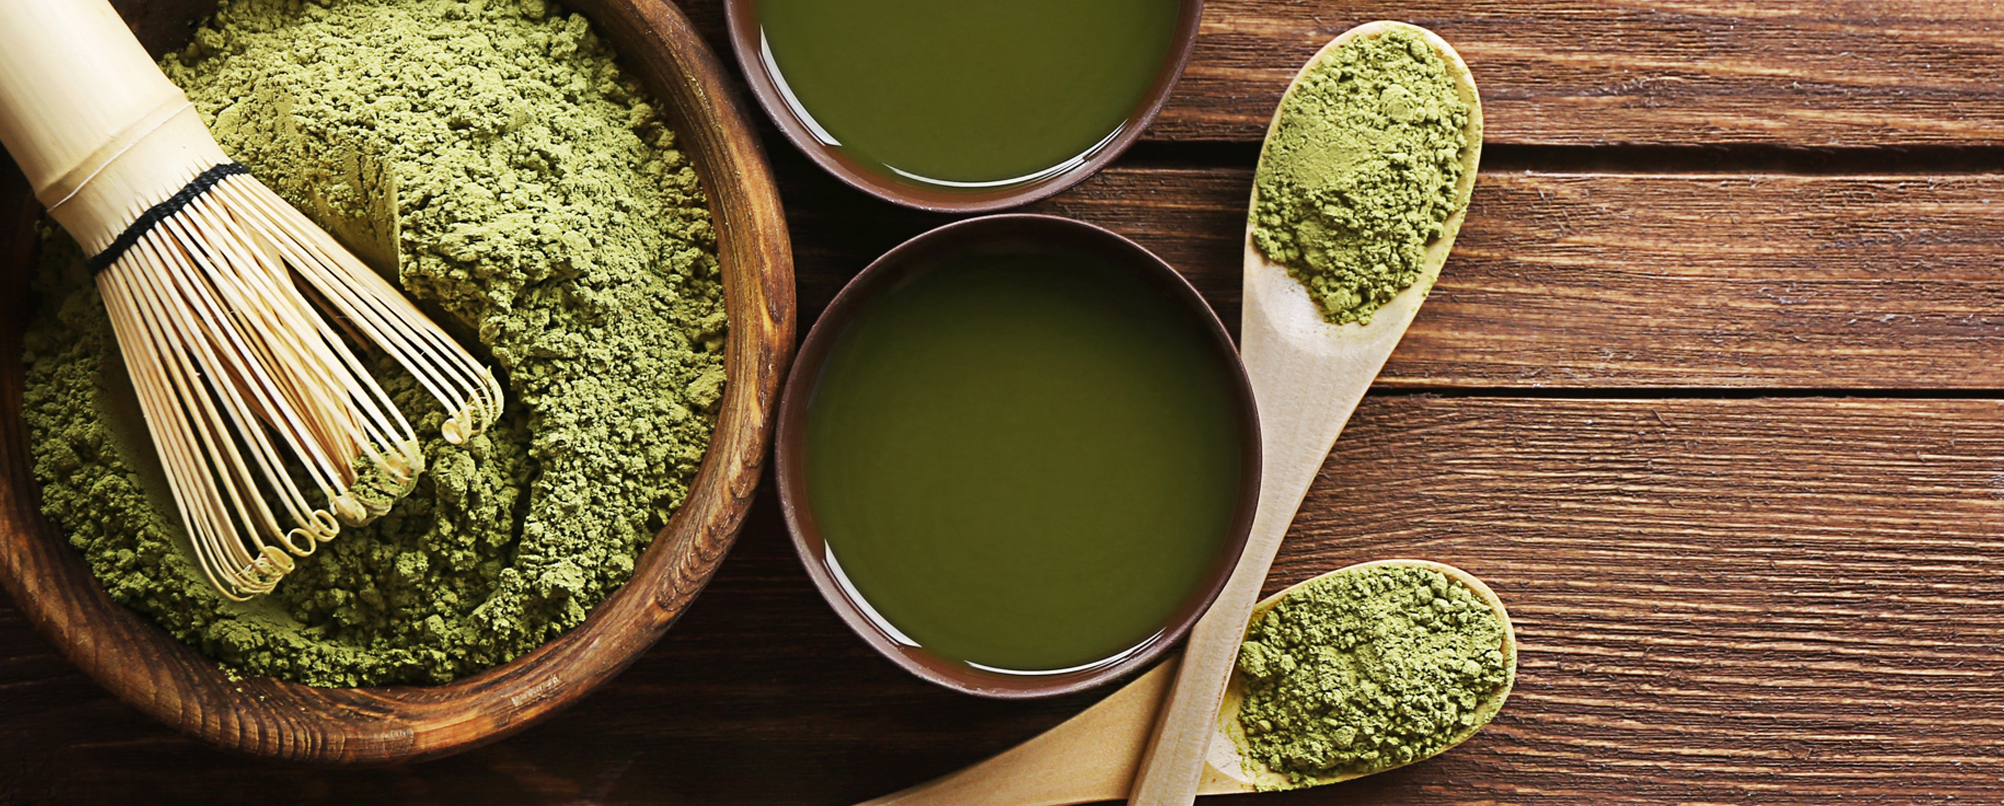 Holistic homeopathic green wheatgrass powder and mixture for alternative medicine